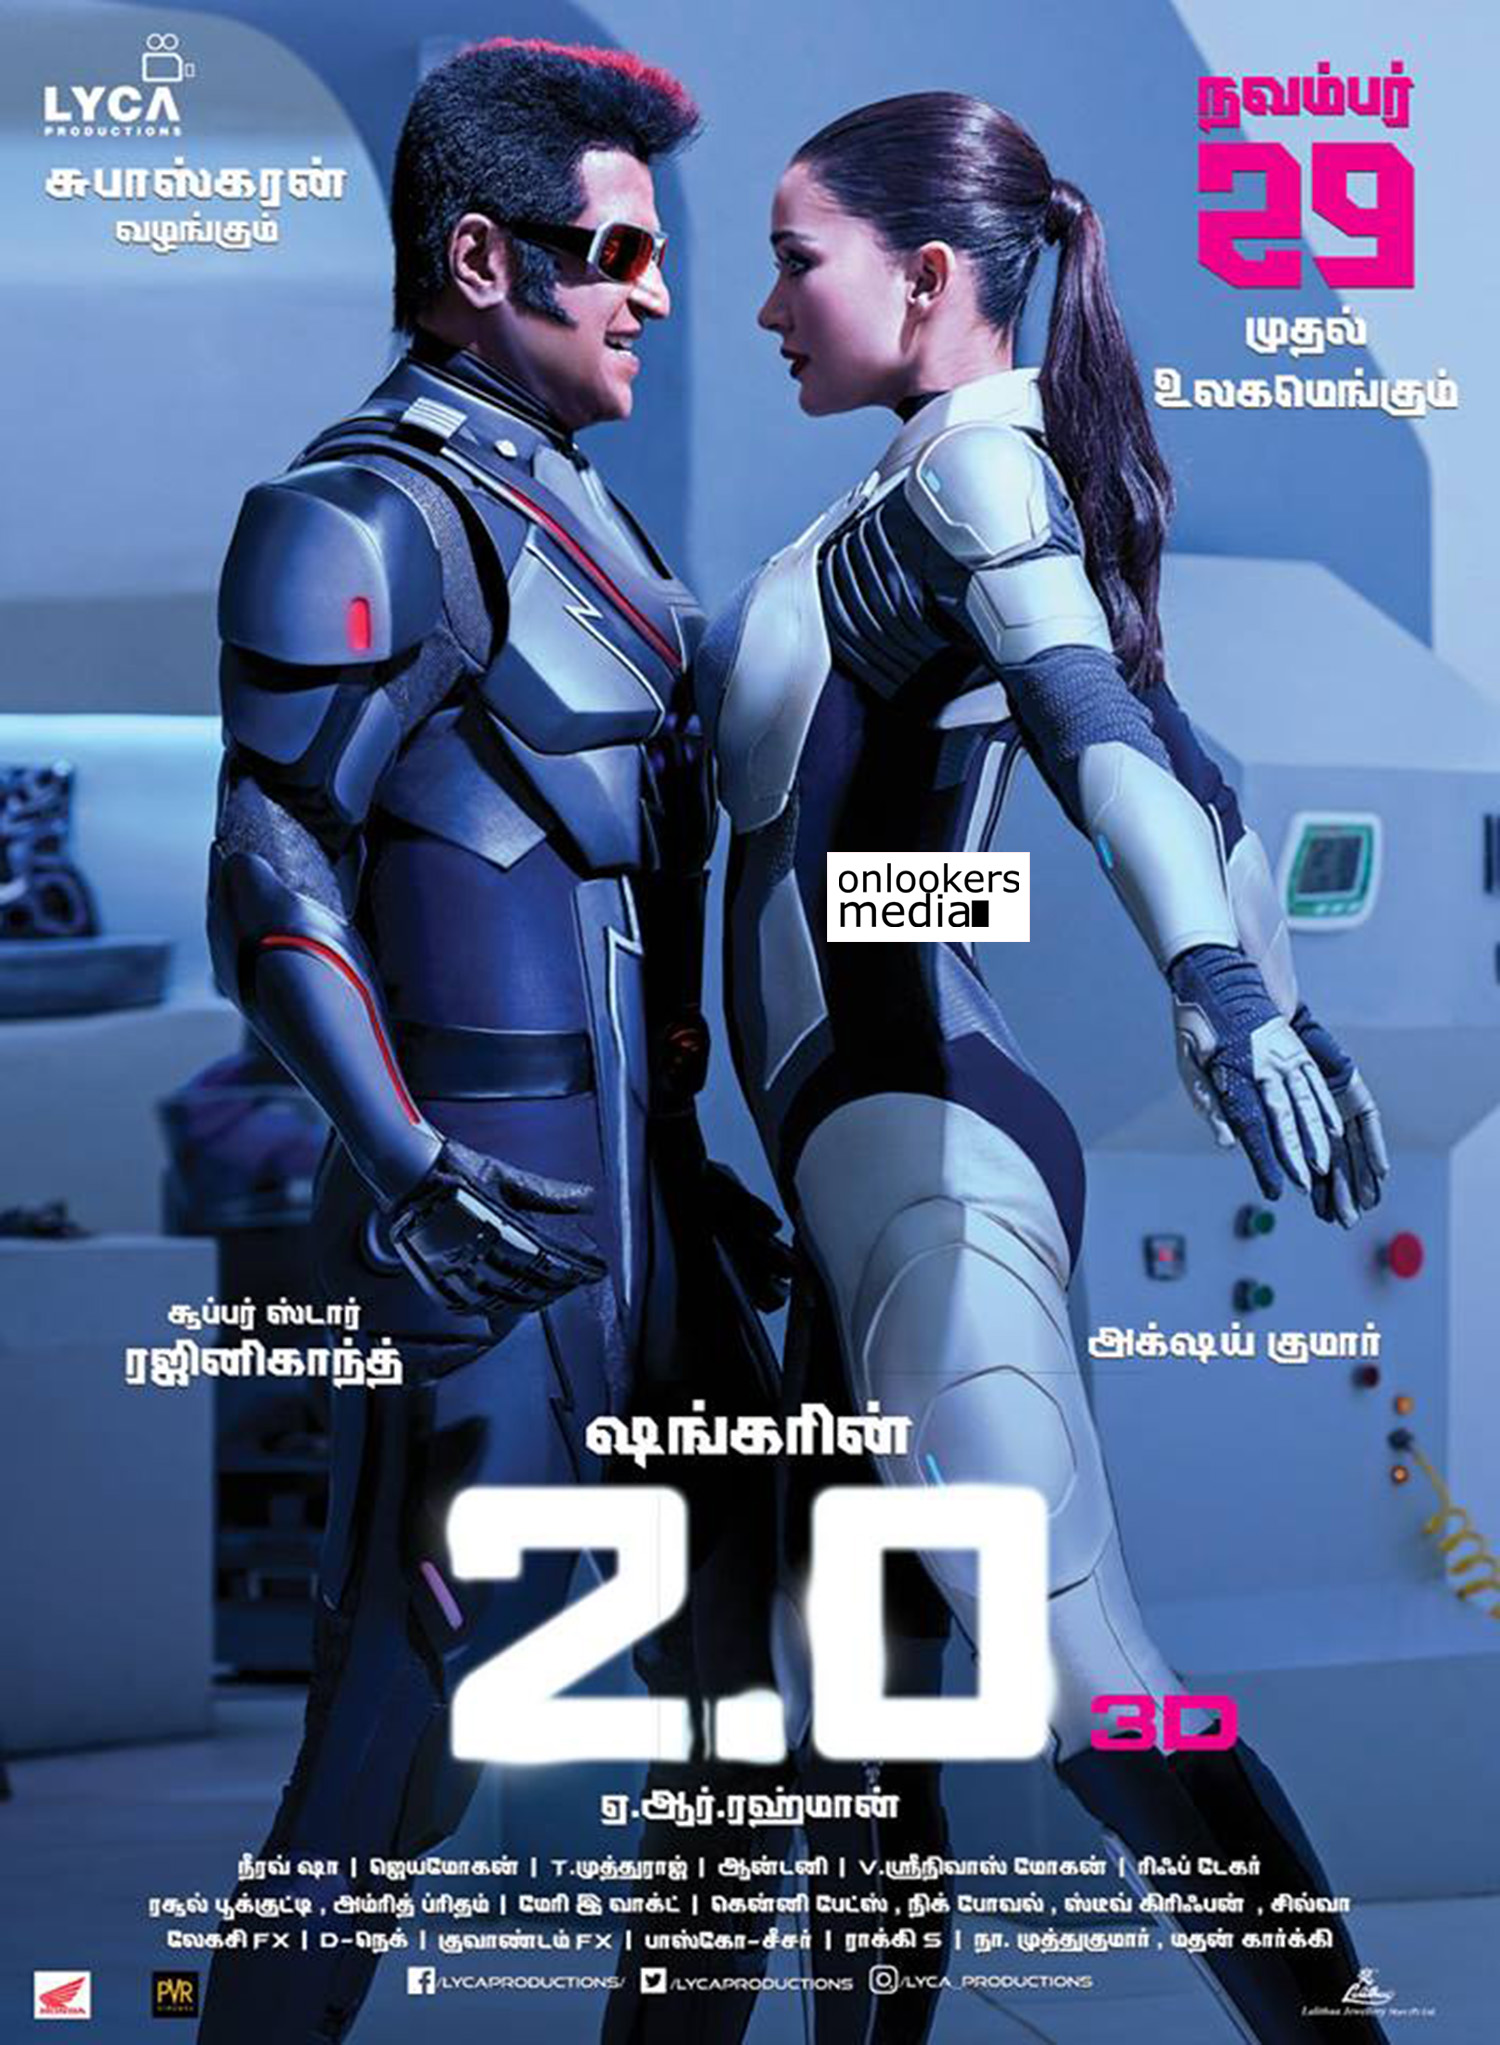 2.0,2.0 review,2.0 movie review,2point0 review,rajinikanth,shankar,akshay kumar,rajinikanth's 2.0 review,shankar's 2.0 review,akshay kumar's 2.0 review,2.0 movie review rating report,amy jackson,shankar rajinikanth 2.0 review,2.0 hit or flop,2.0 indian cinema box office report,2.0 movie poster,2.0 movie stills